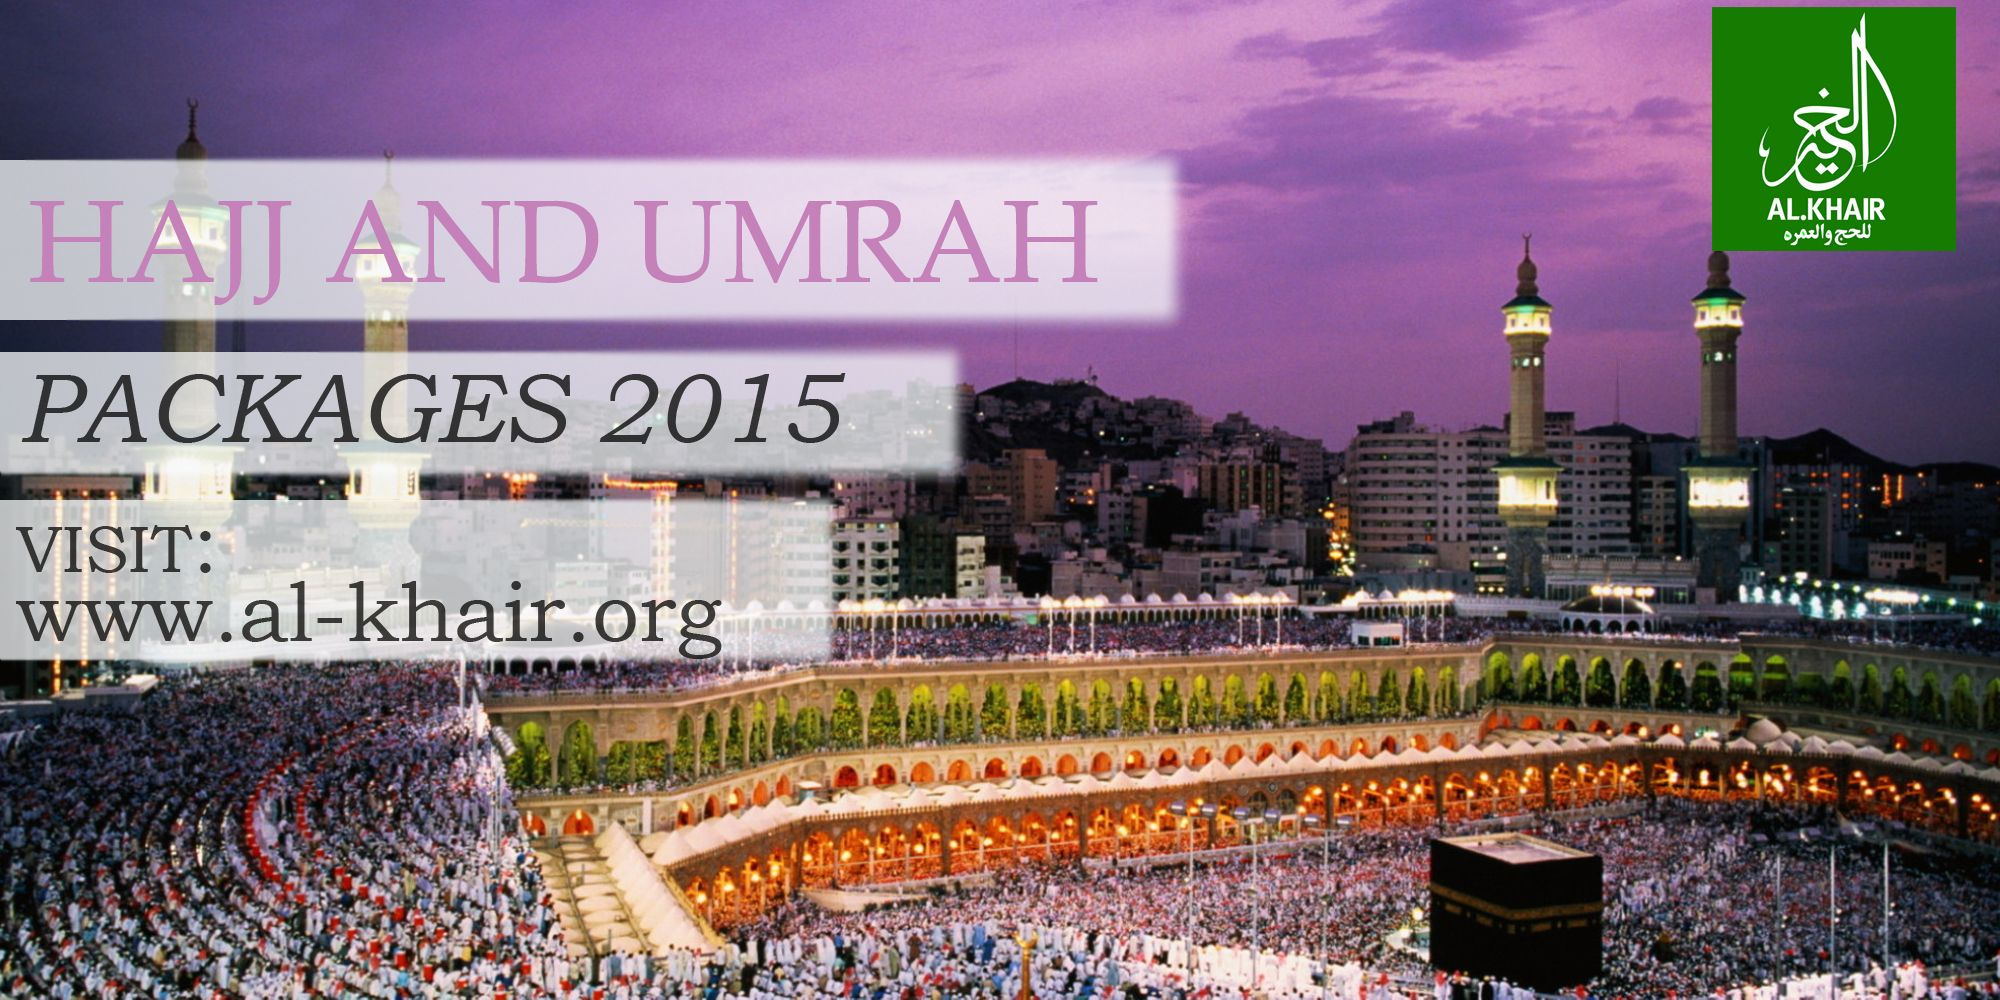 Umrah Banner: Plan Your HAJJ And UMRAH Packages With Al-Khair Hajj